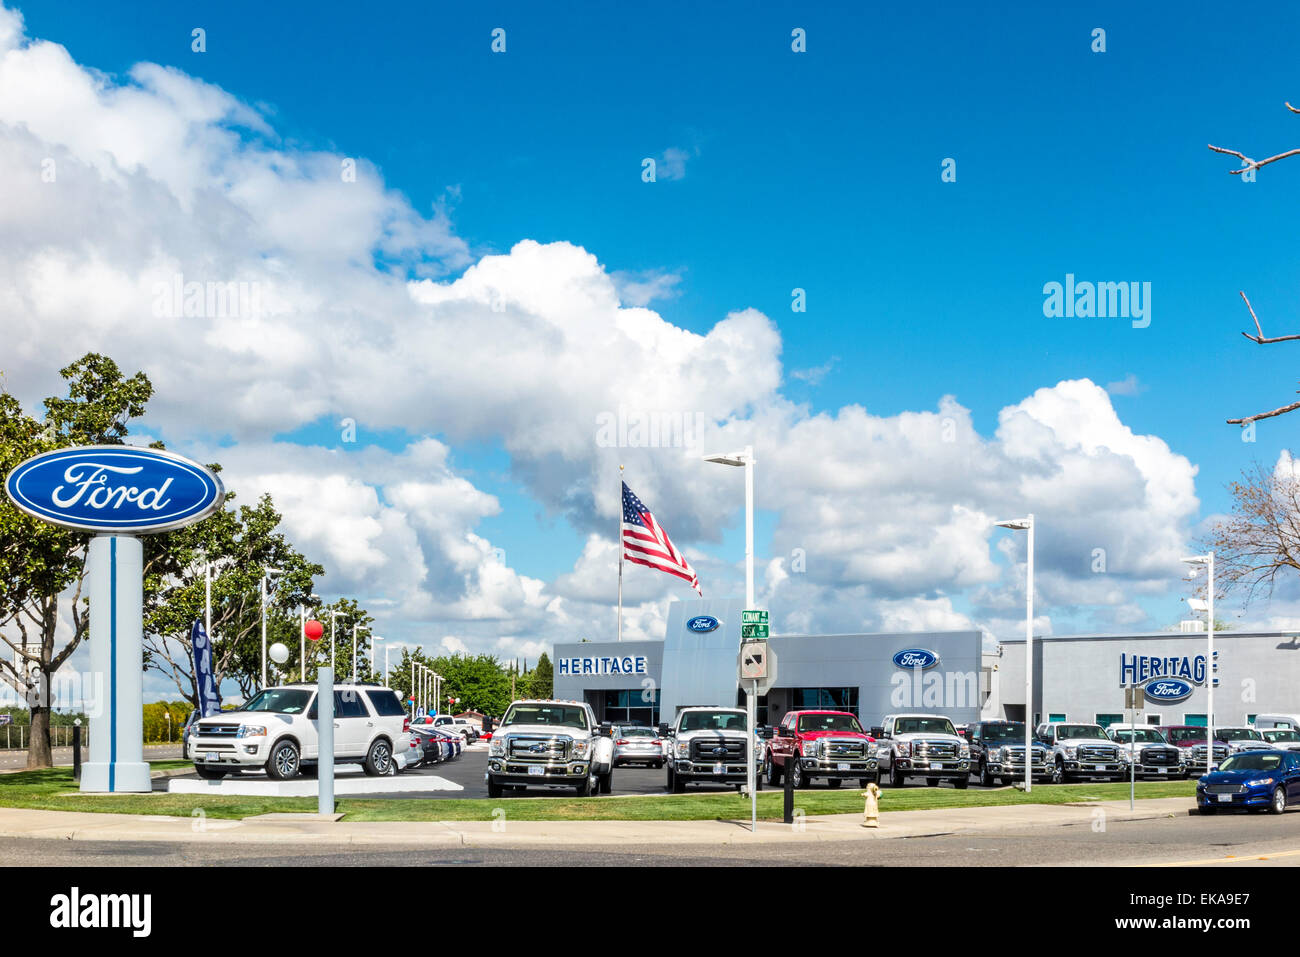 Ford Dealership Modesto >> A Ford Dealership In Modesto California Stock Photo